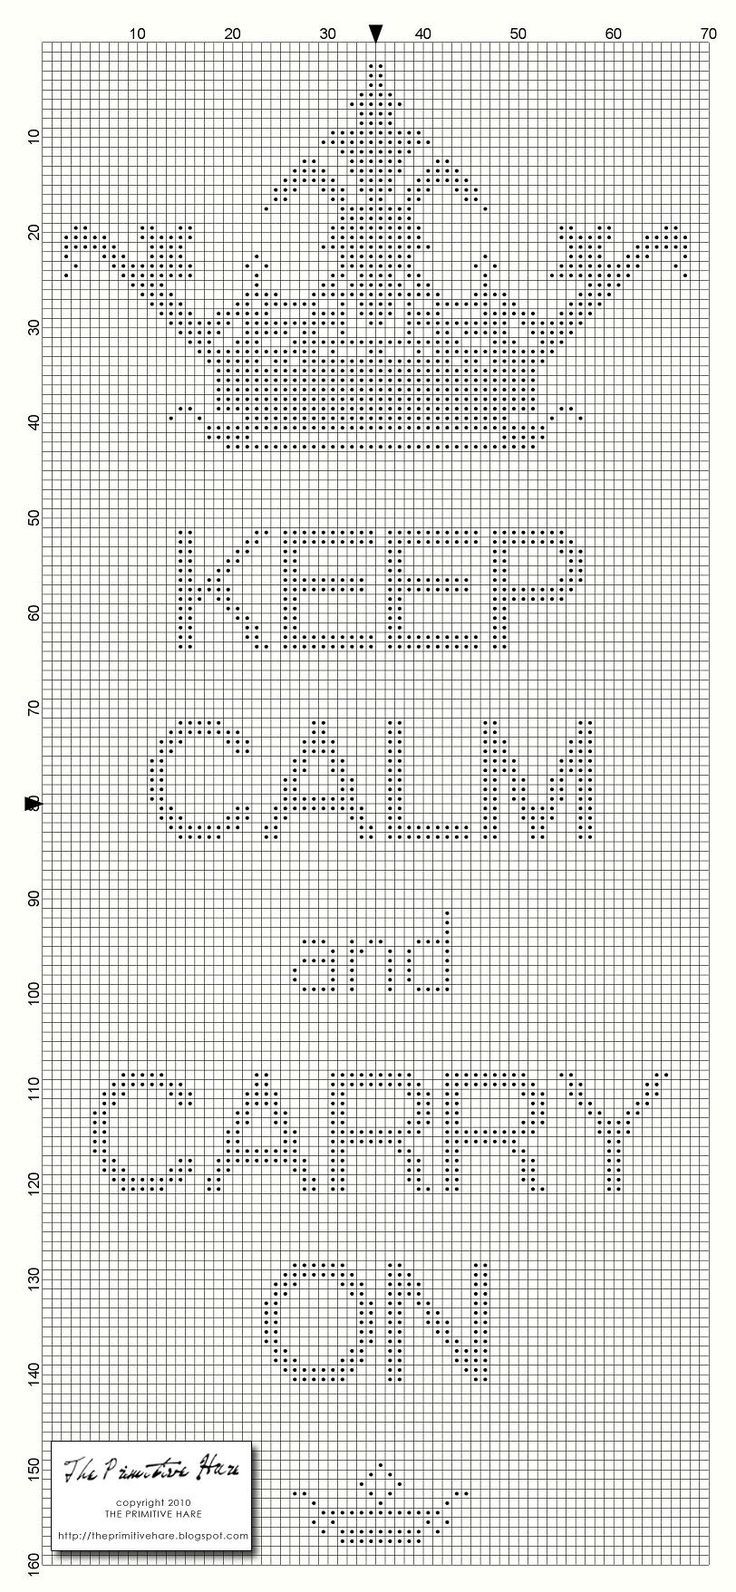 Keep Calm and Carry On free pattern from The Primitive Hare